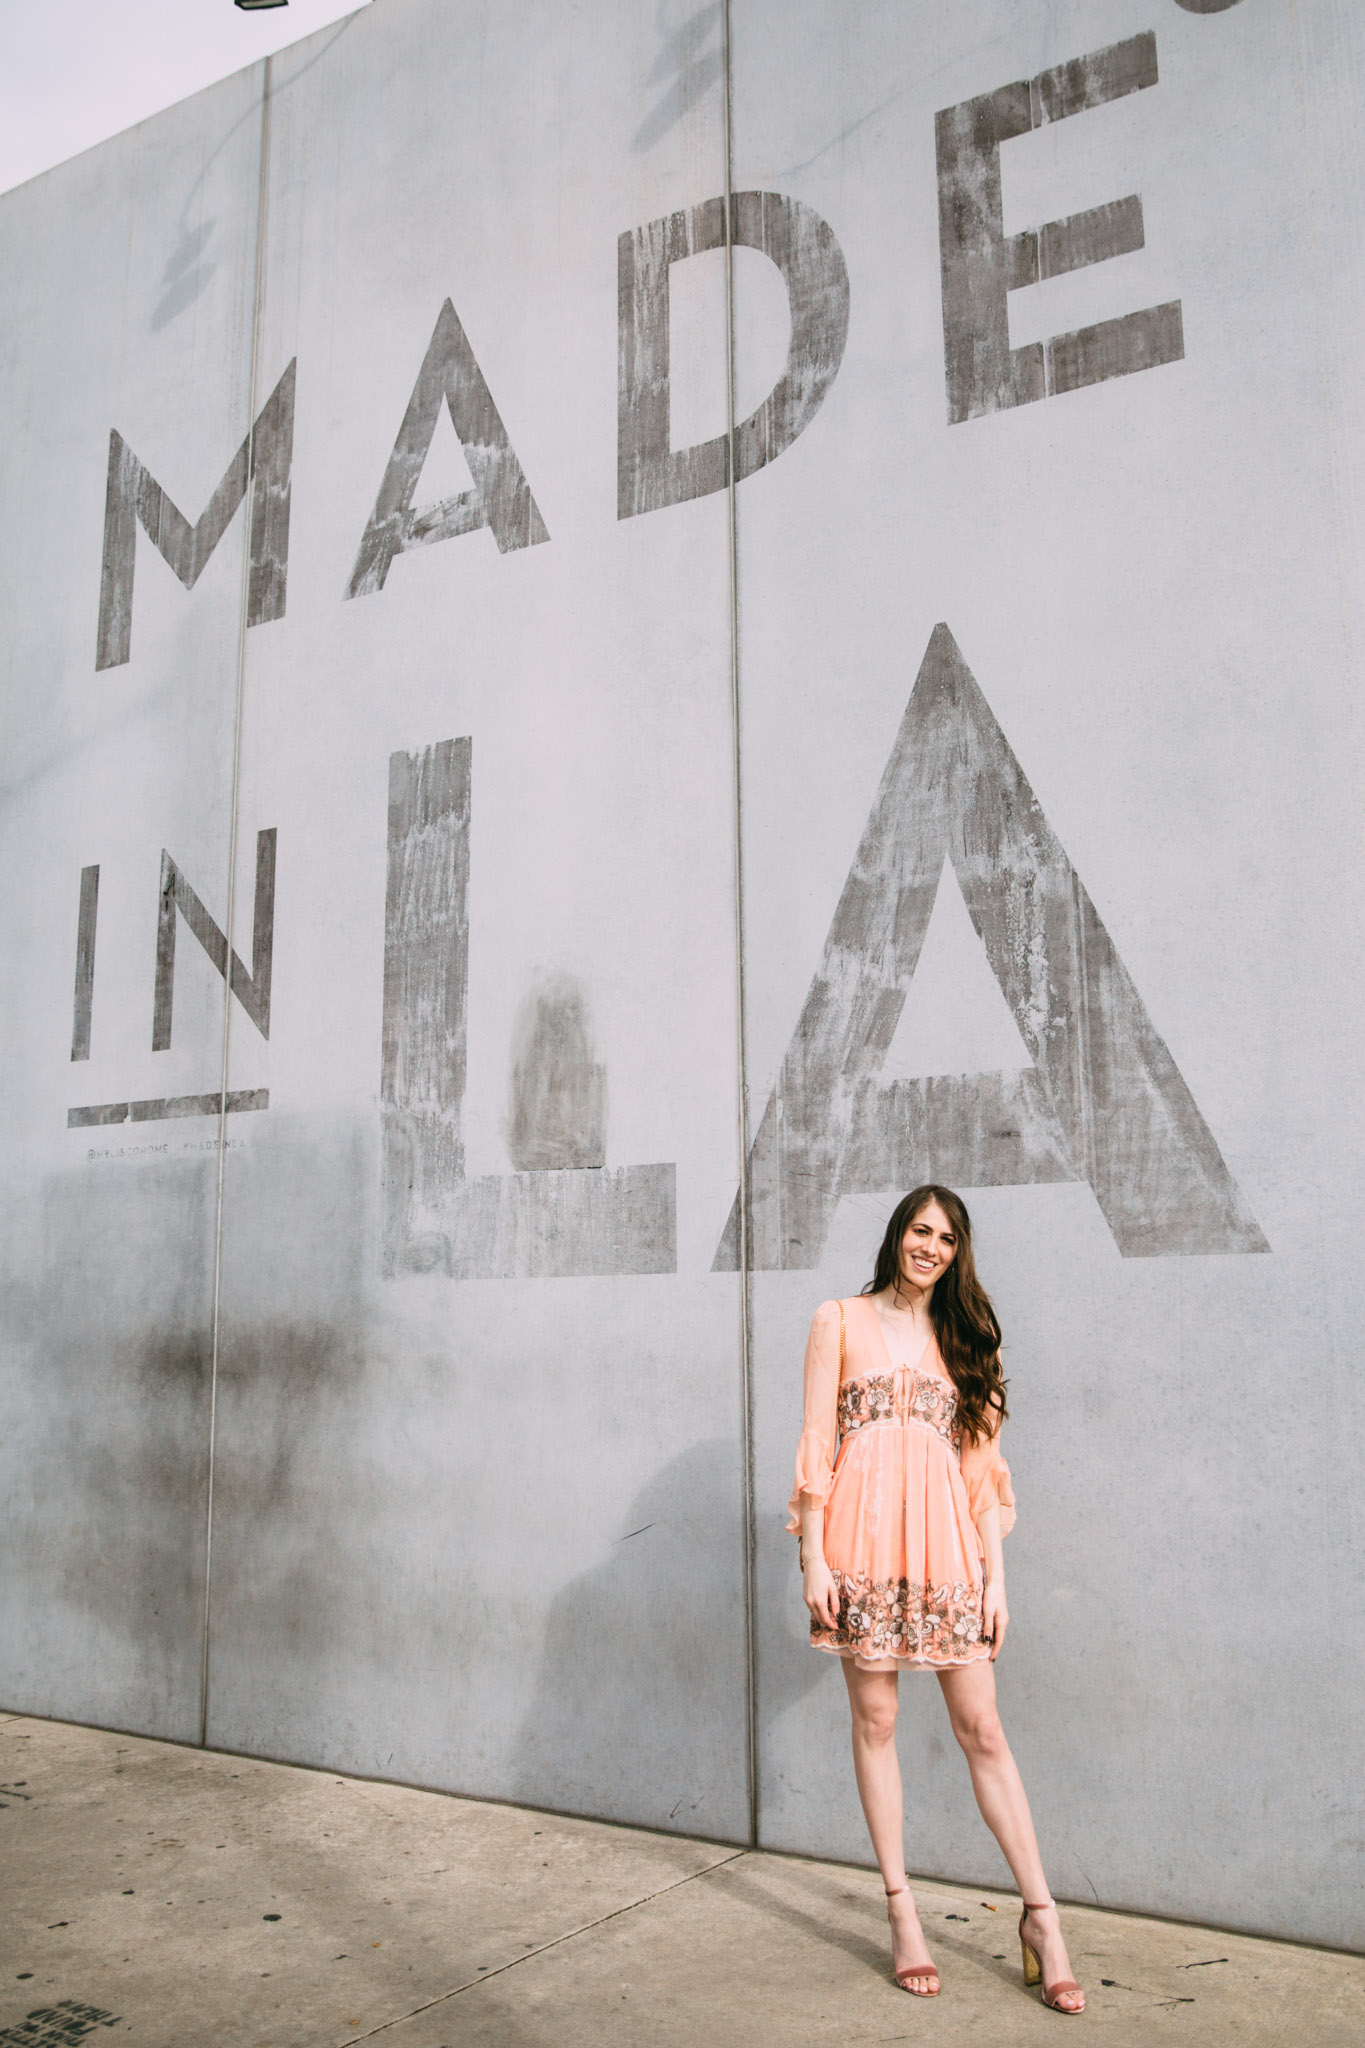 Most instagrammable walls in Los Angeles